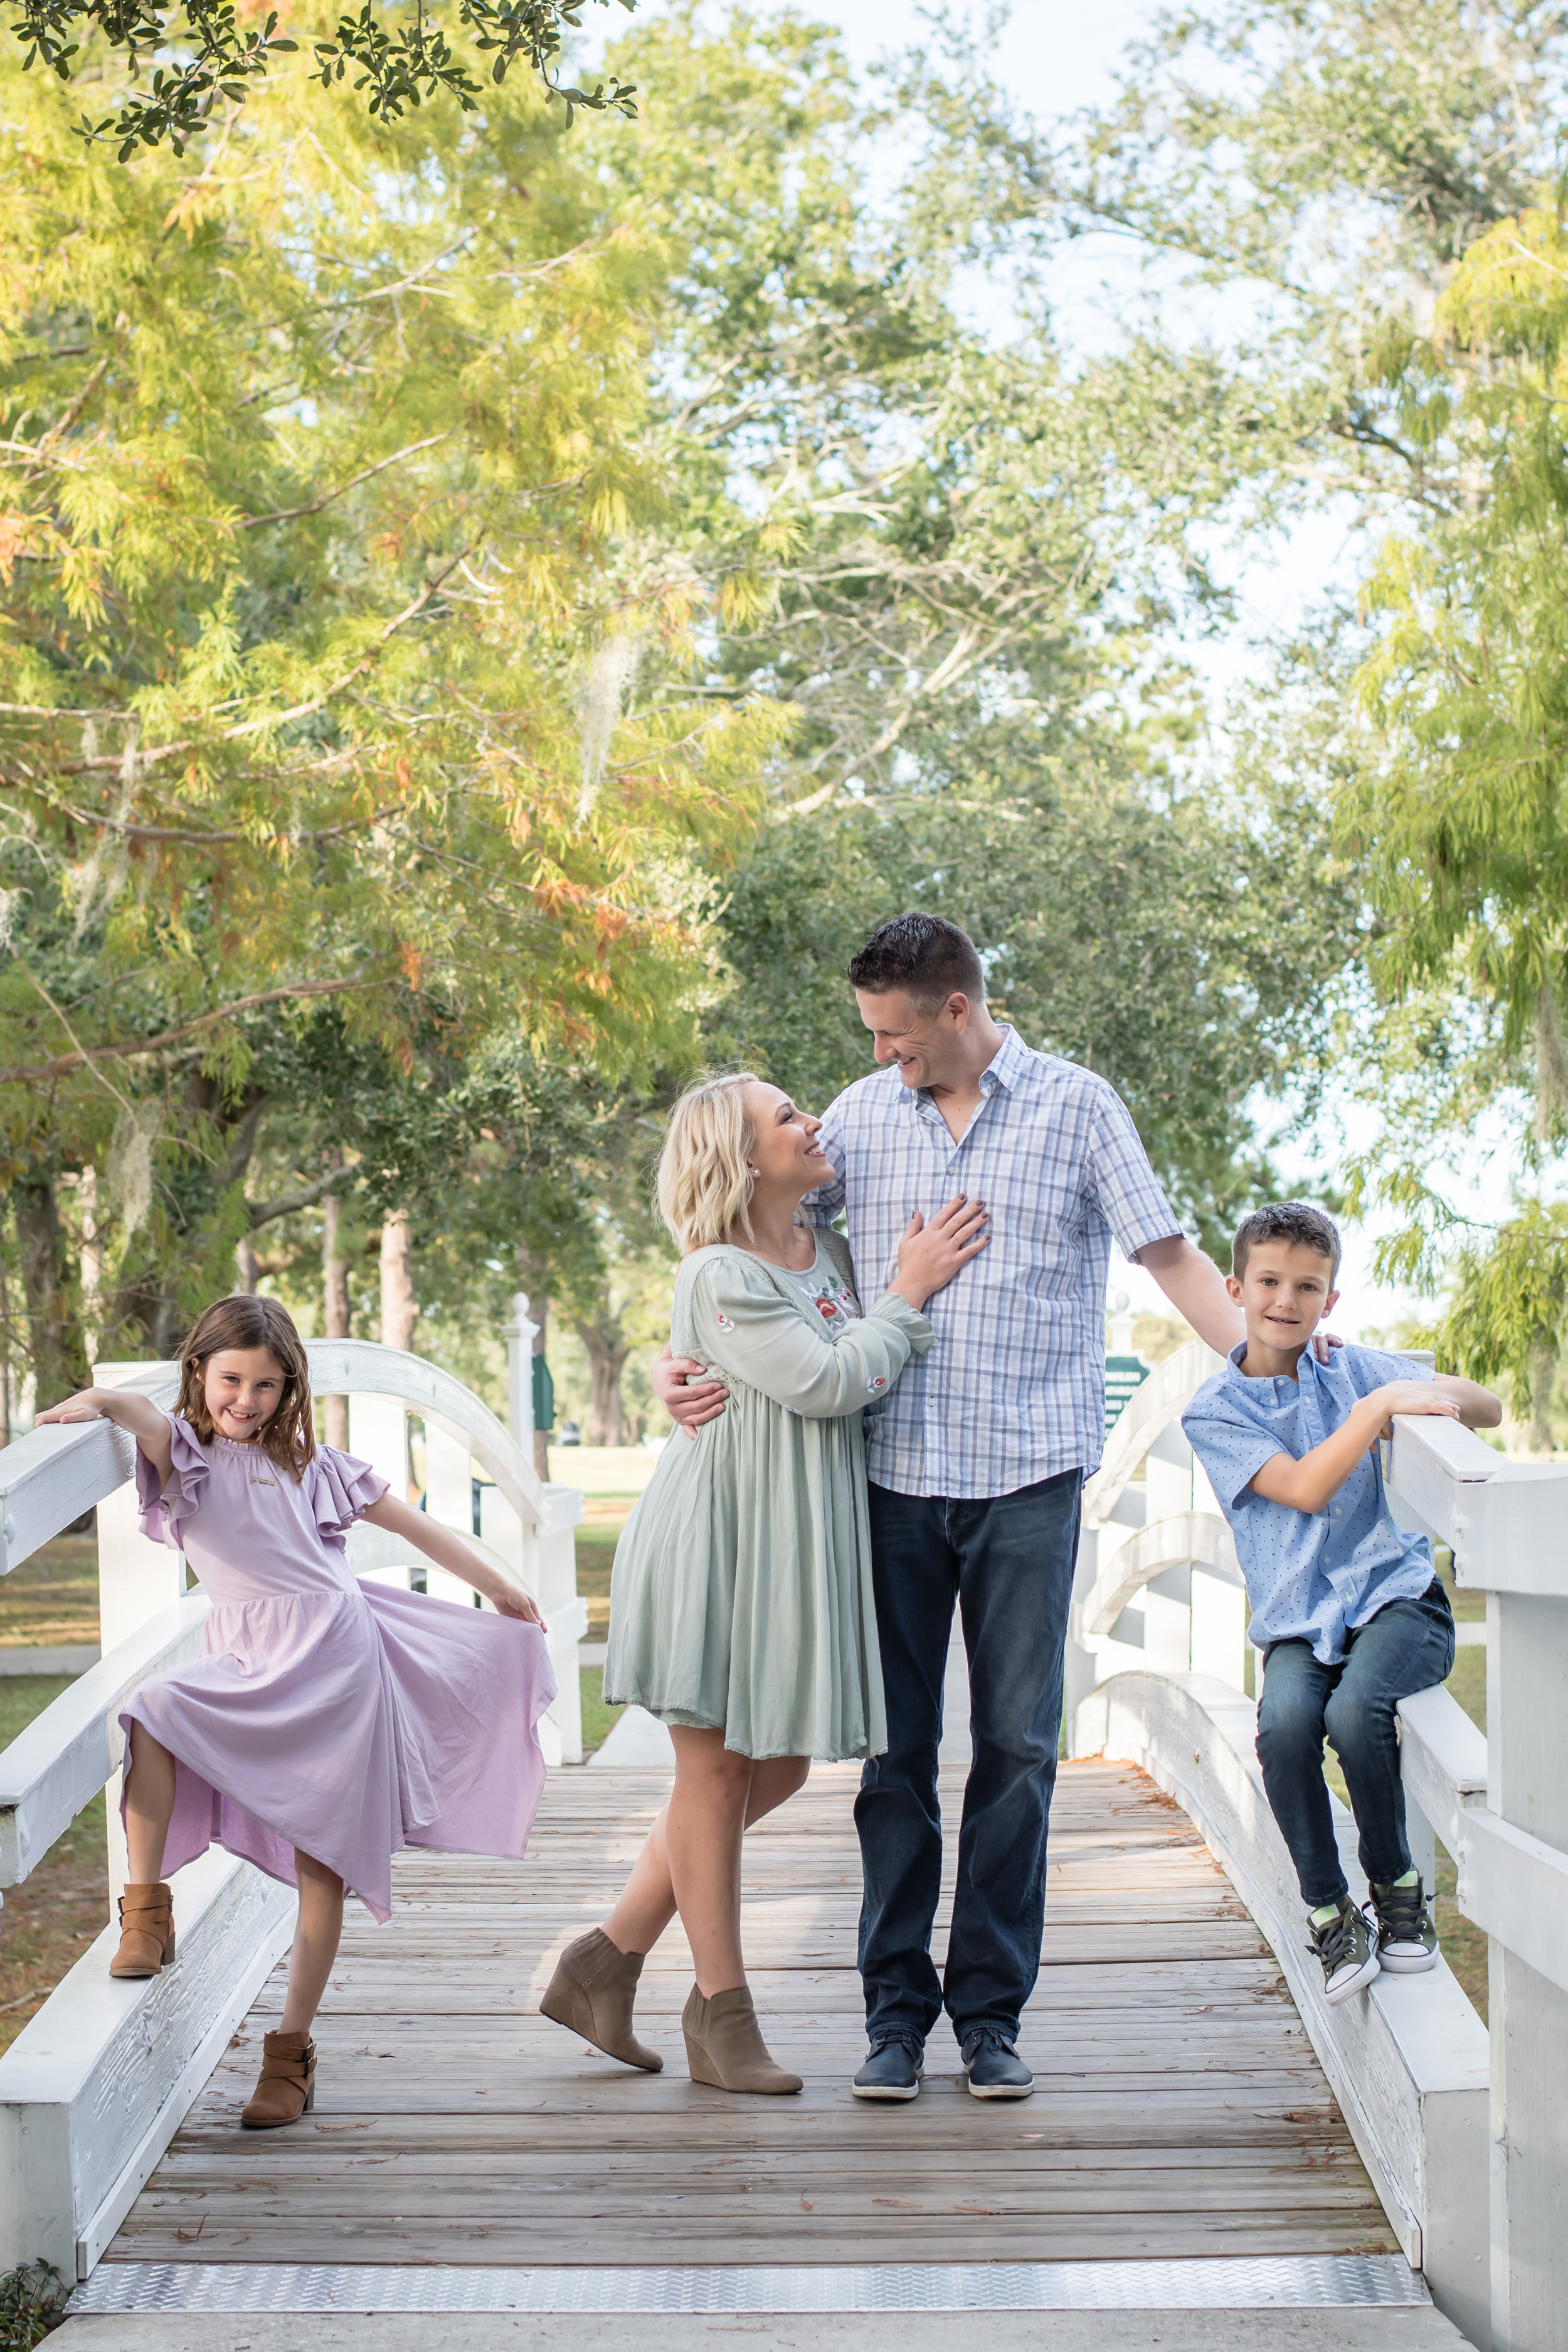 cypress-grove-park-family-session-orlando-photographer-yanitza-ninett-16.jpg